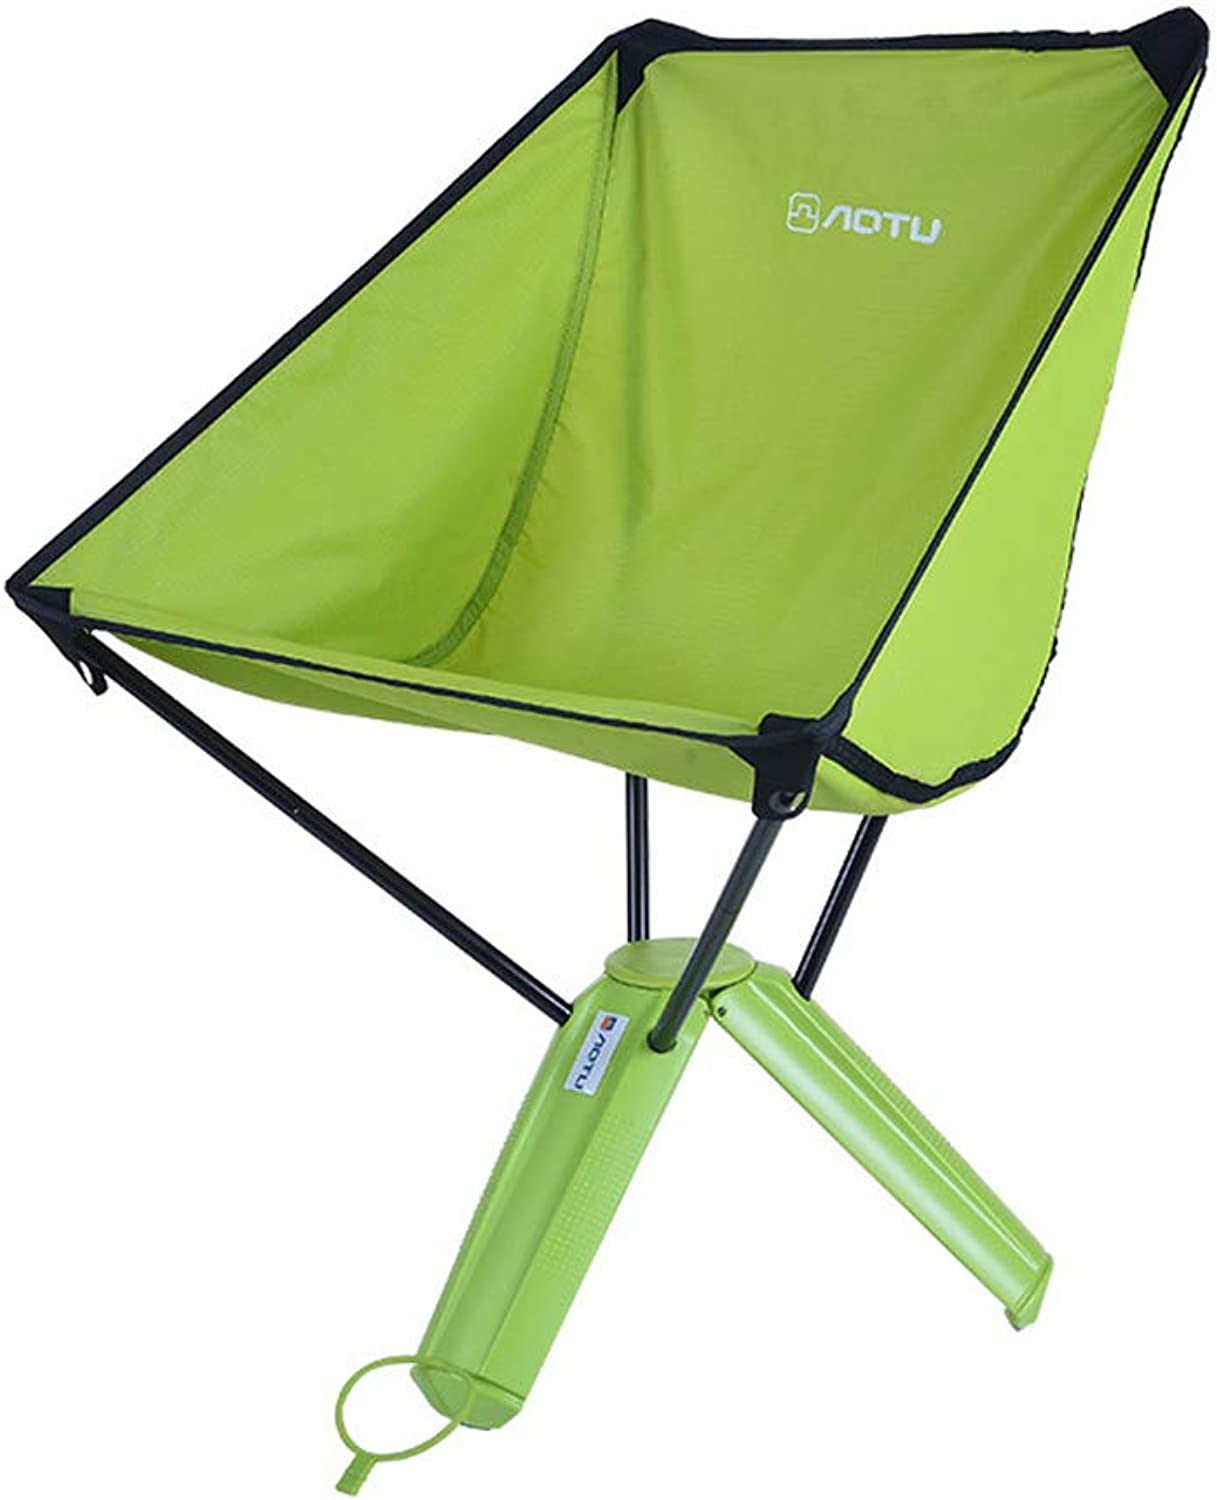 Portable Folding Chair, QuicklyFold Outdoor Camping Stool Slacker Stool Applicable to Travel Mountain Climbing BBQ Fishing Beach,Green